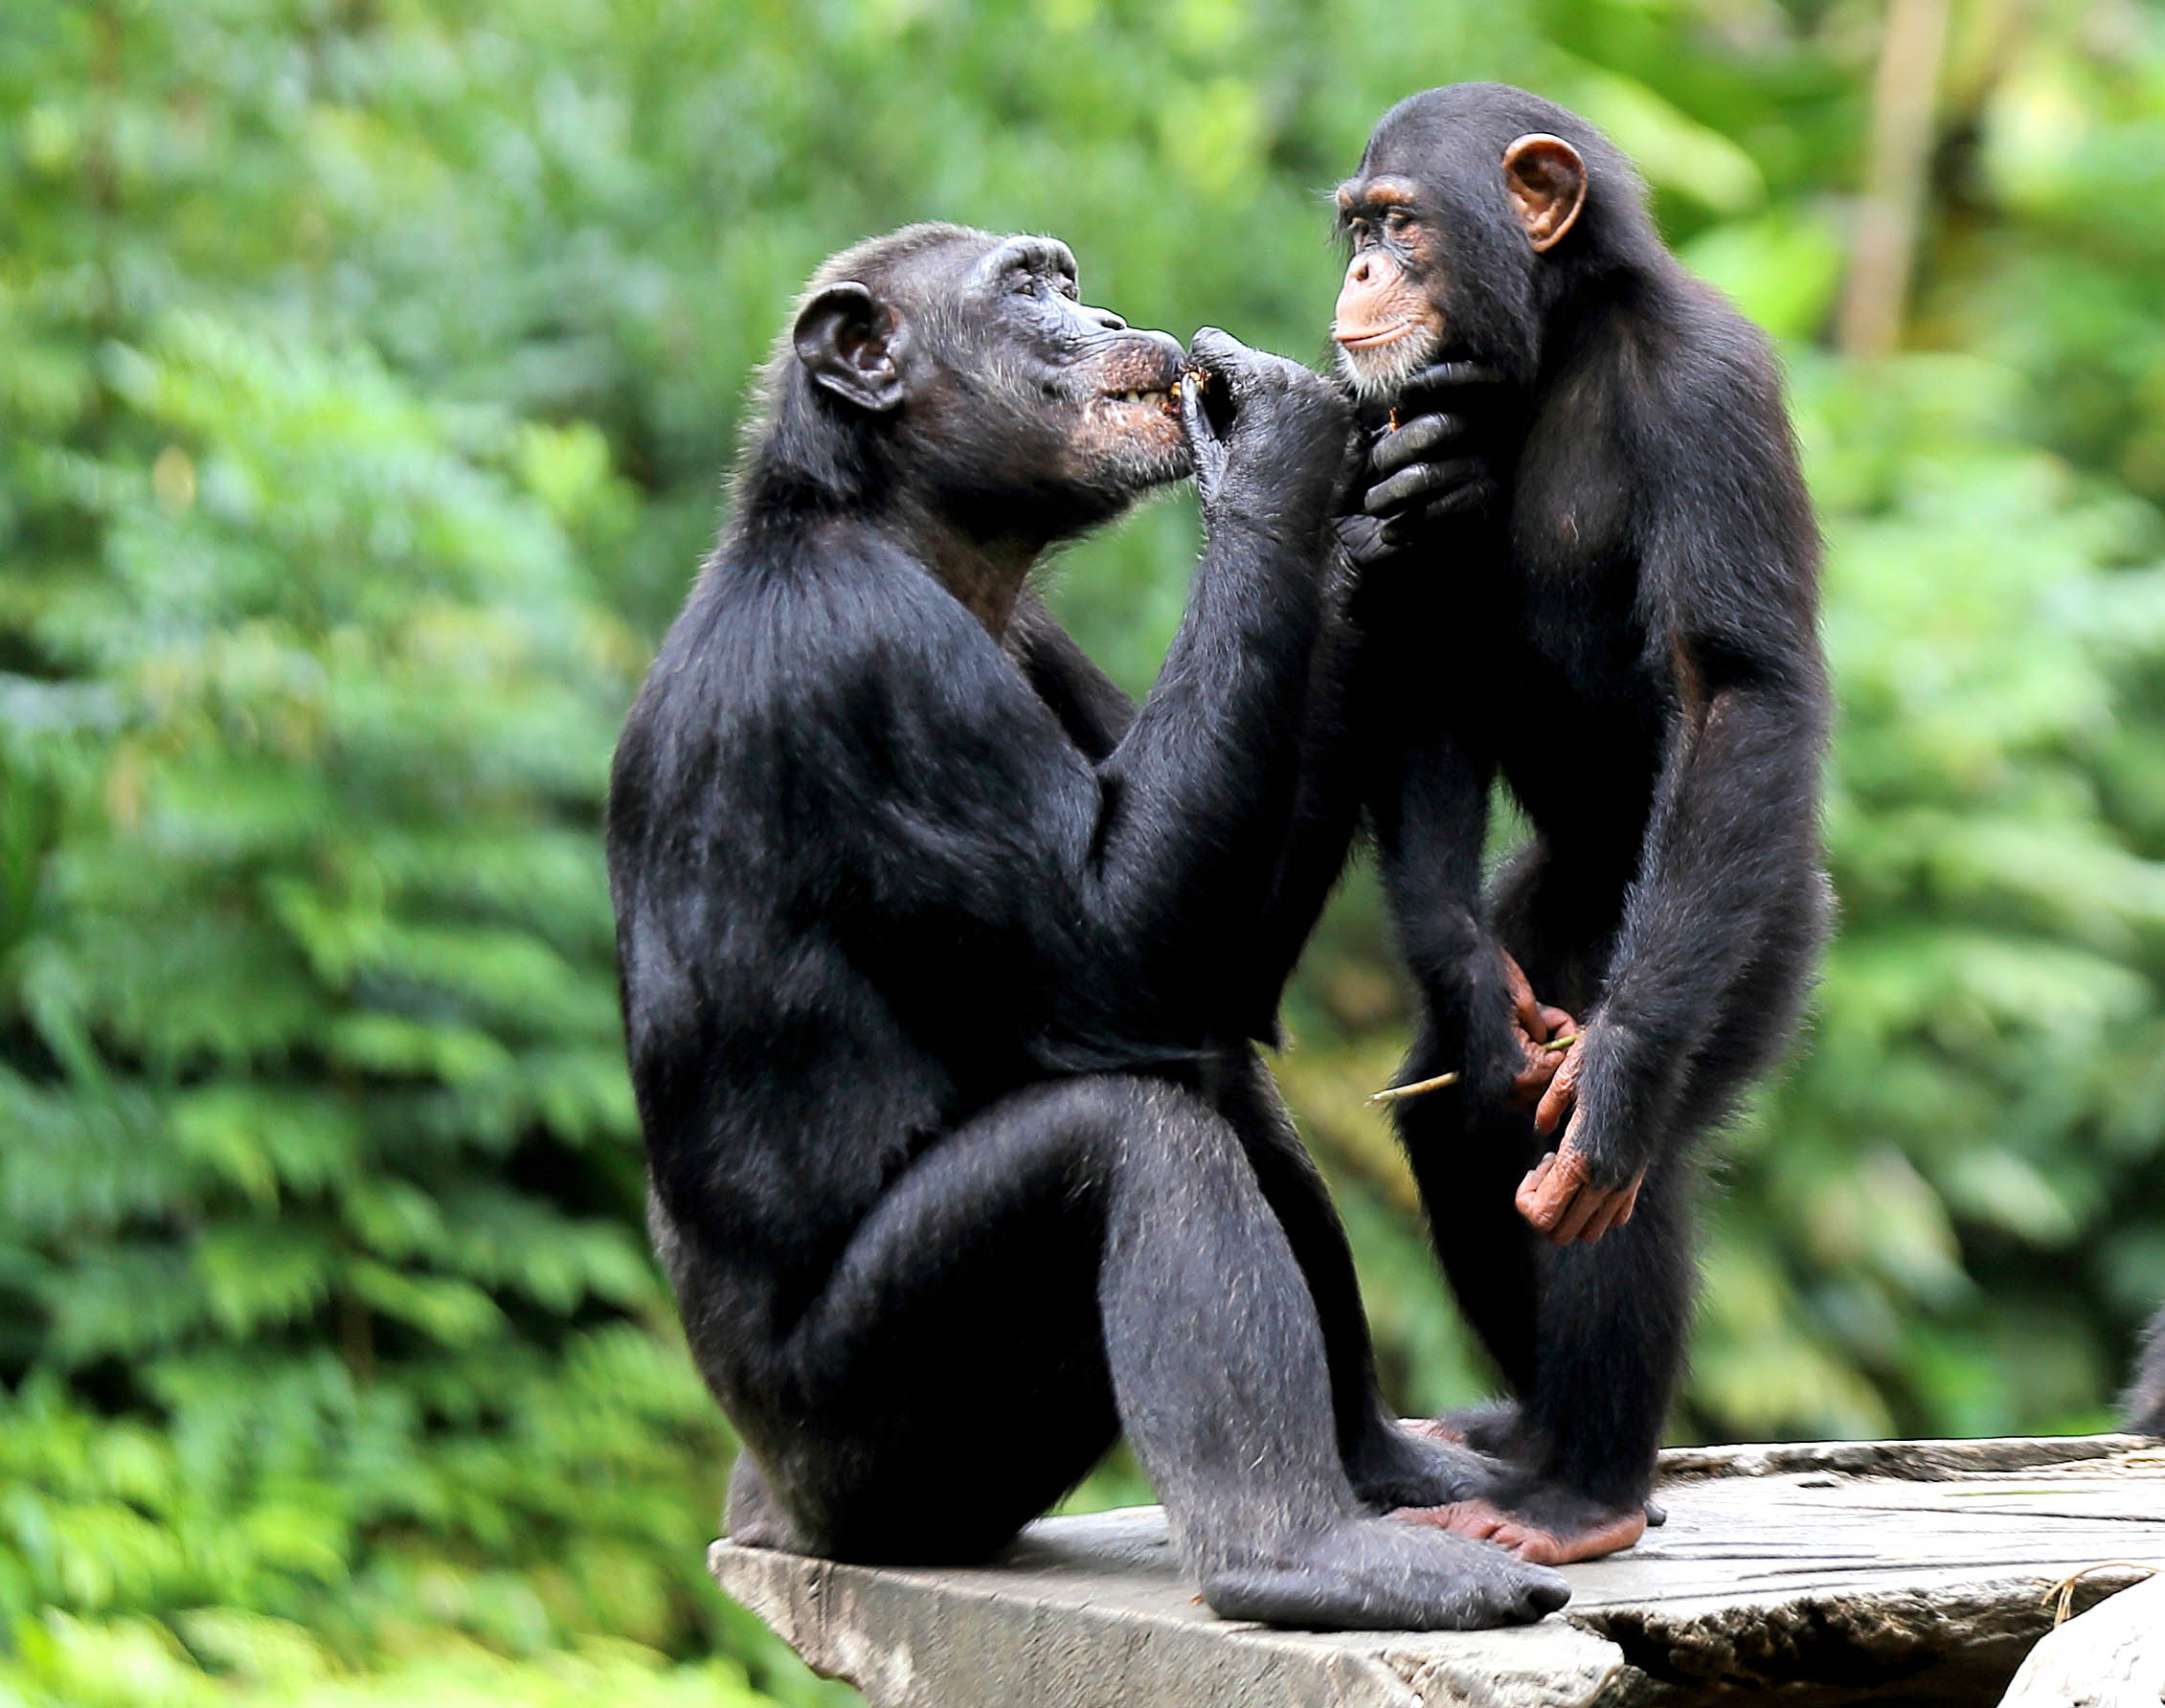 chimpanzees Awesome chimpanzee information chimpanzees communicate using gestures chimpanzees communicate in lots of ways, like using body language and funny facial expression.